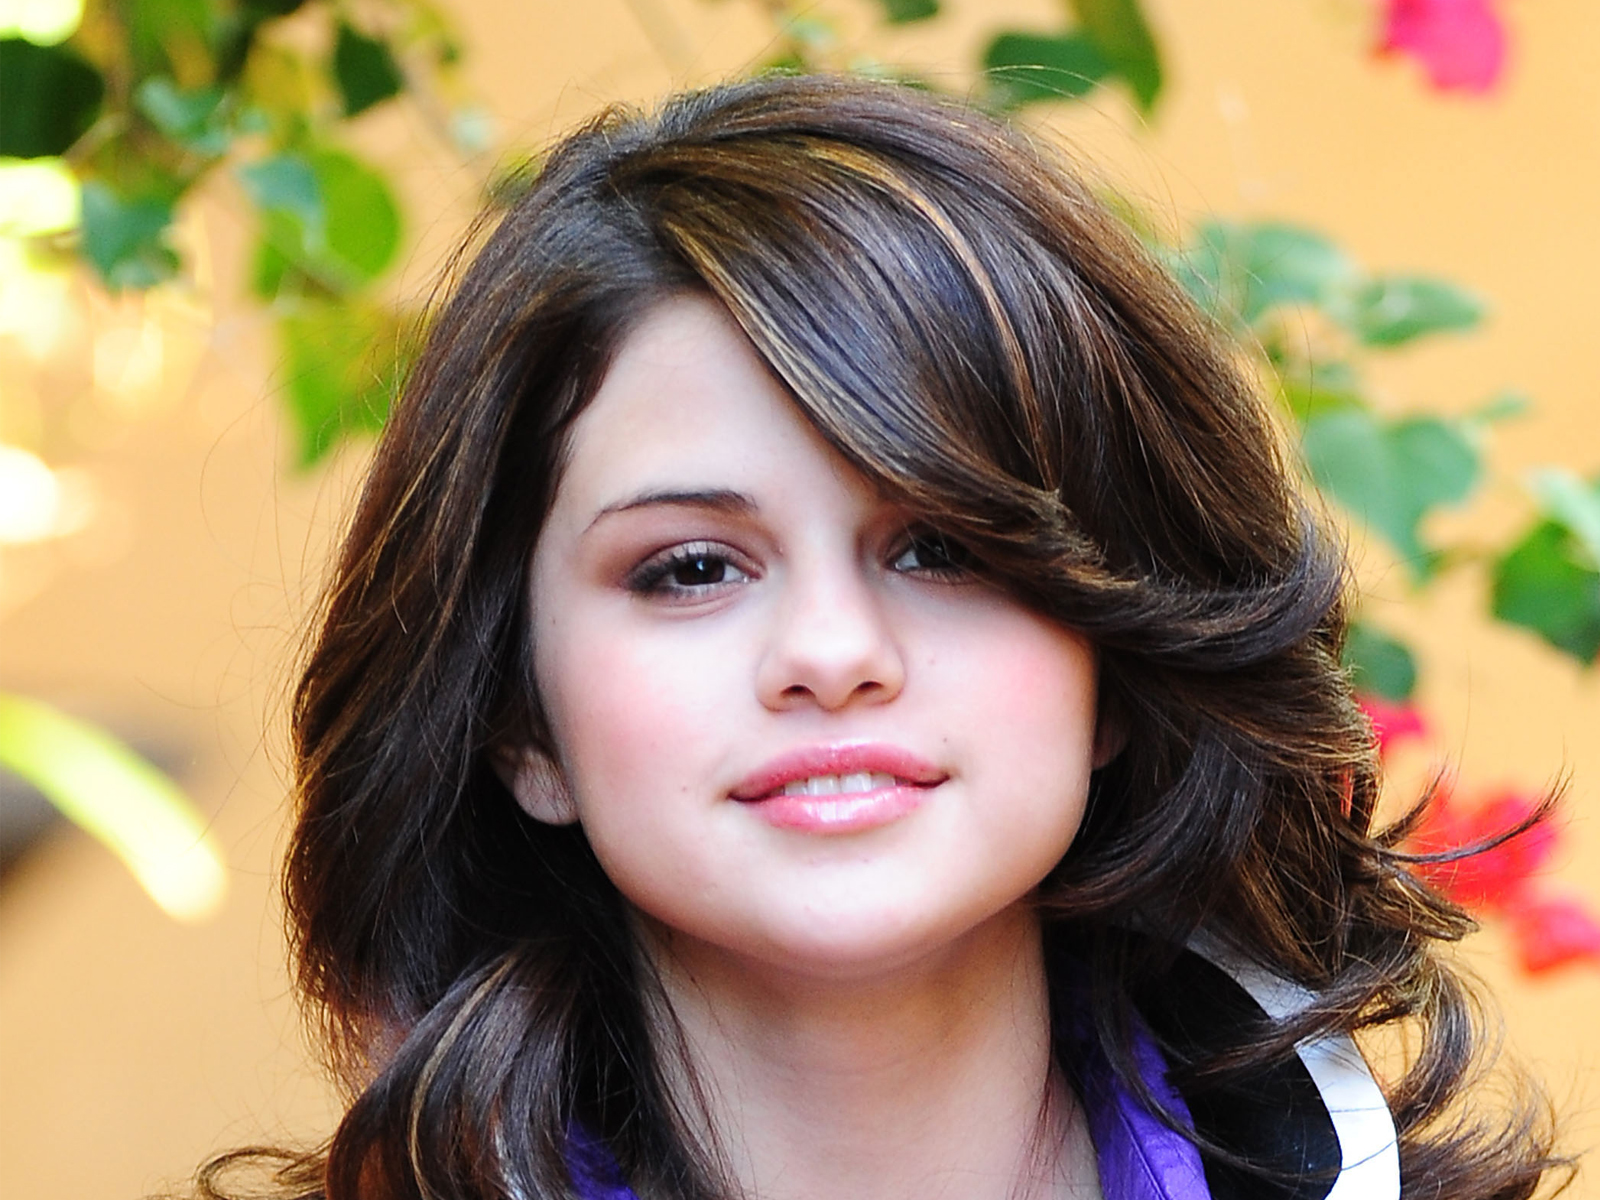 Selena Gomez Wallpaper 47